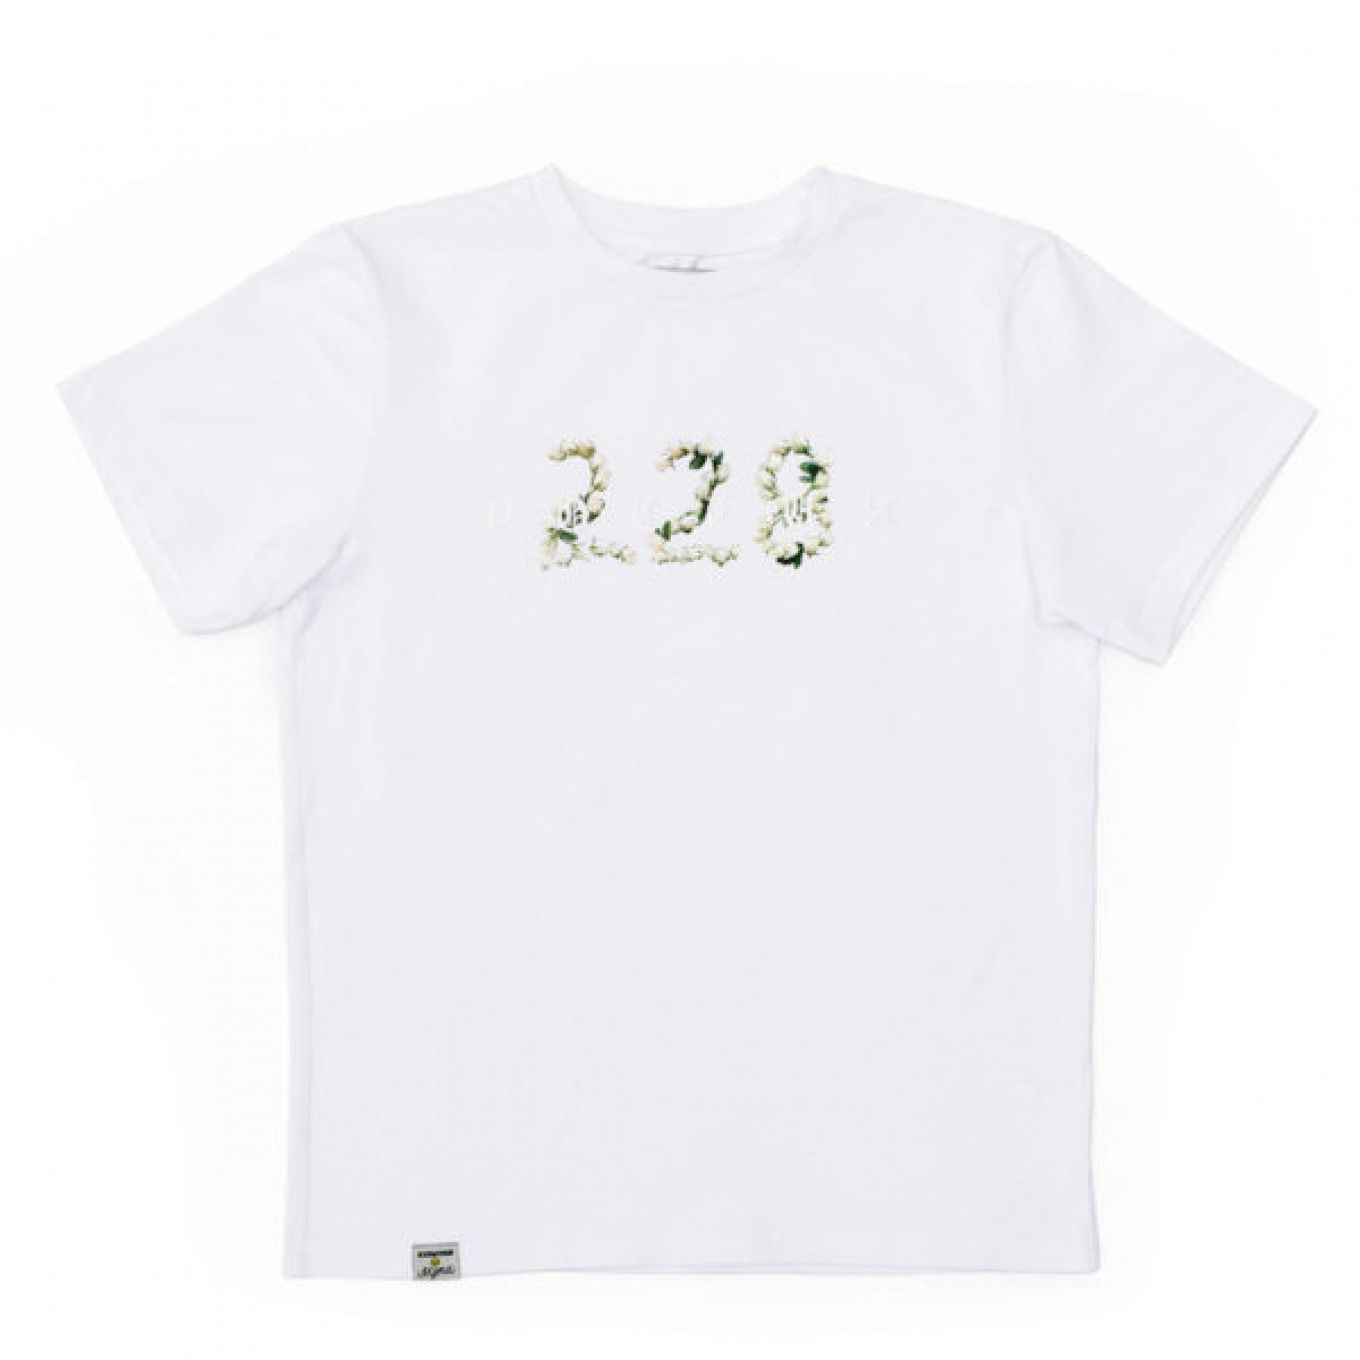 "Kultrab t-shirt from the collection ""Article 228"""